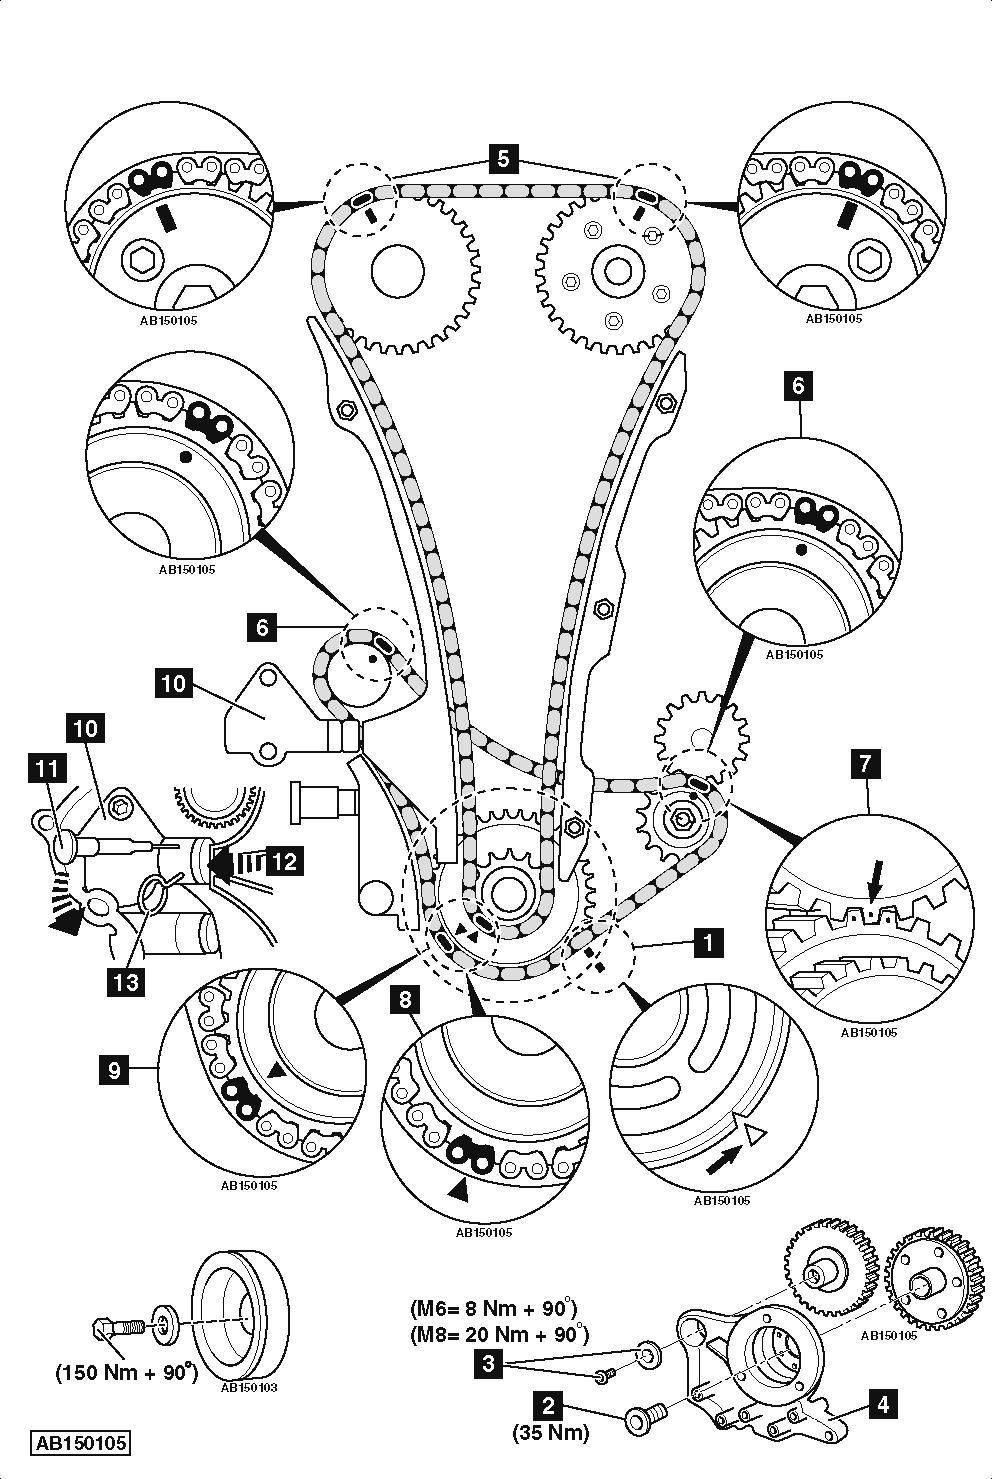 2001 Ford Taurus Serpentine Belt Diagram besides 2wj1h 1999 Audi A4 Serpentine Belt Diagram Can T See Tension furthermore 1316270 further New Audi Engine moreover Info aspx. on audi a3 3 2 quattro fuse box